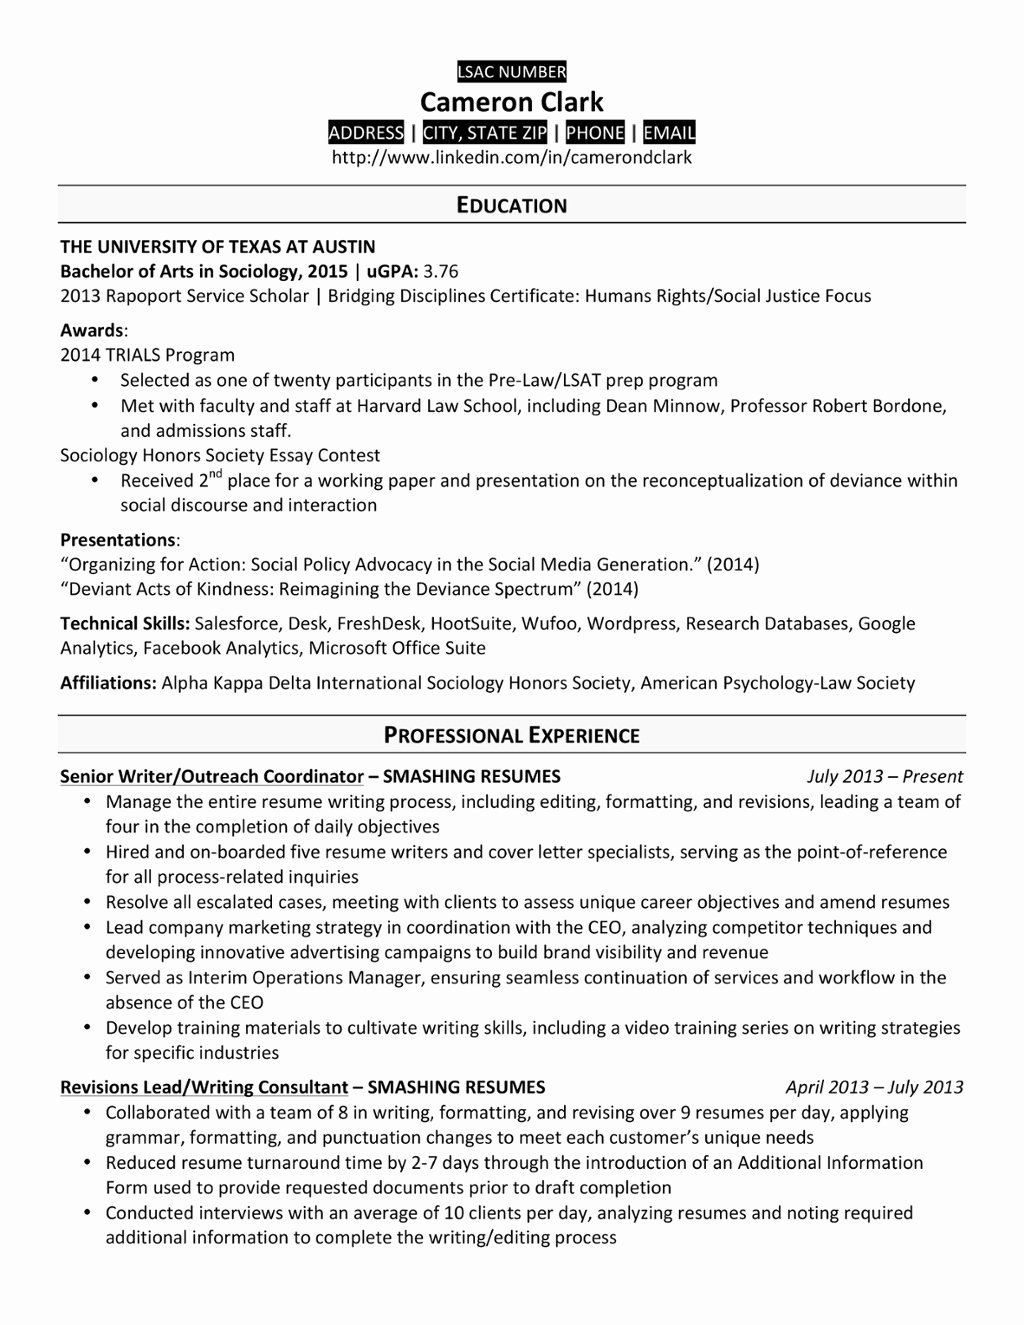 College Graduate Resume Template New A Law School Resume that Made the Cut